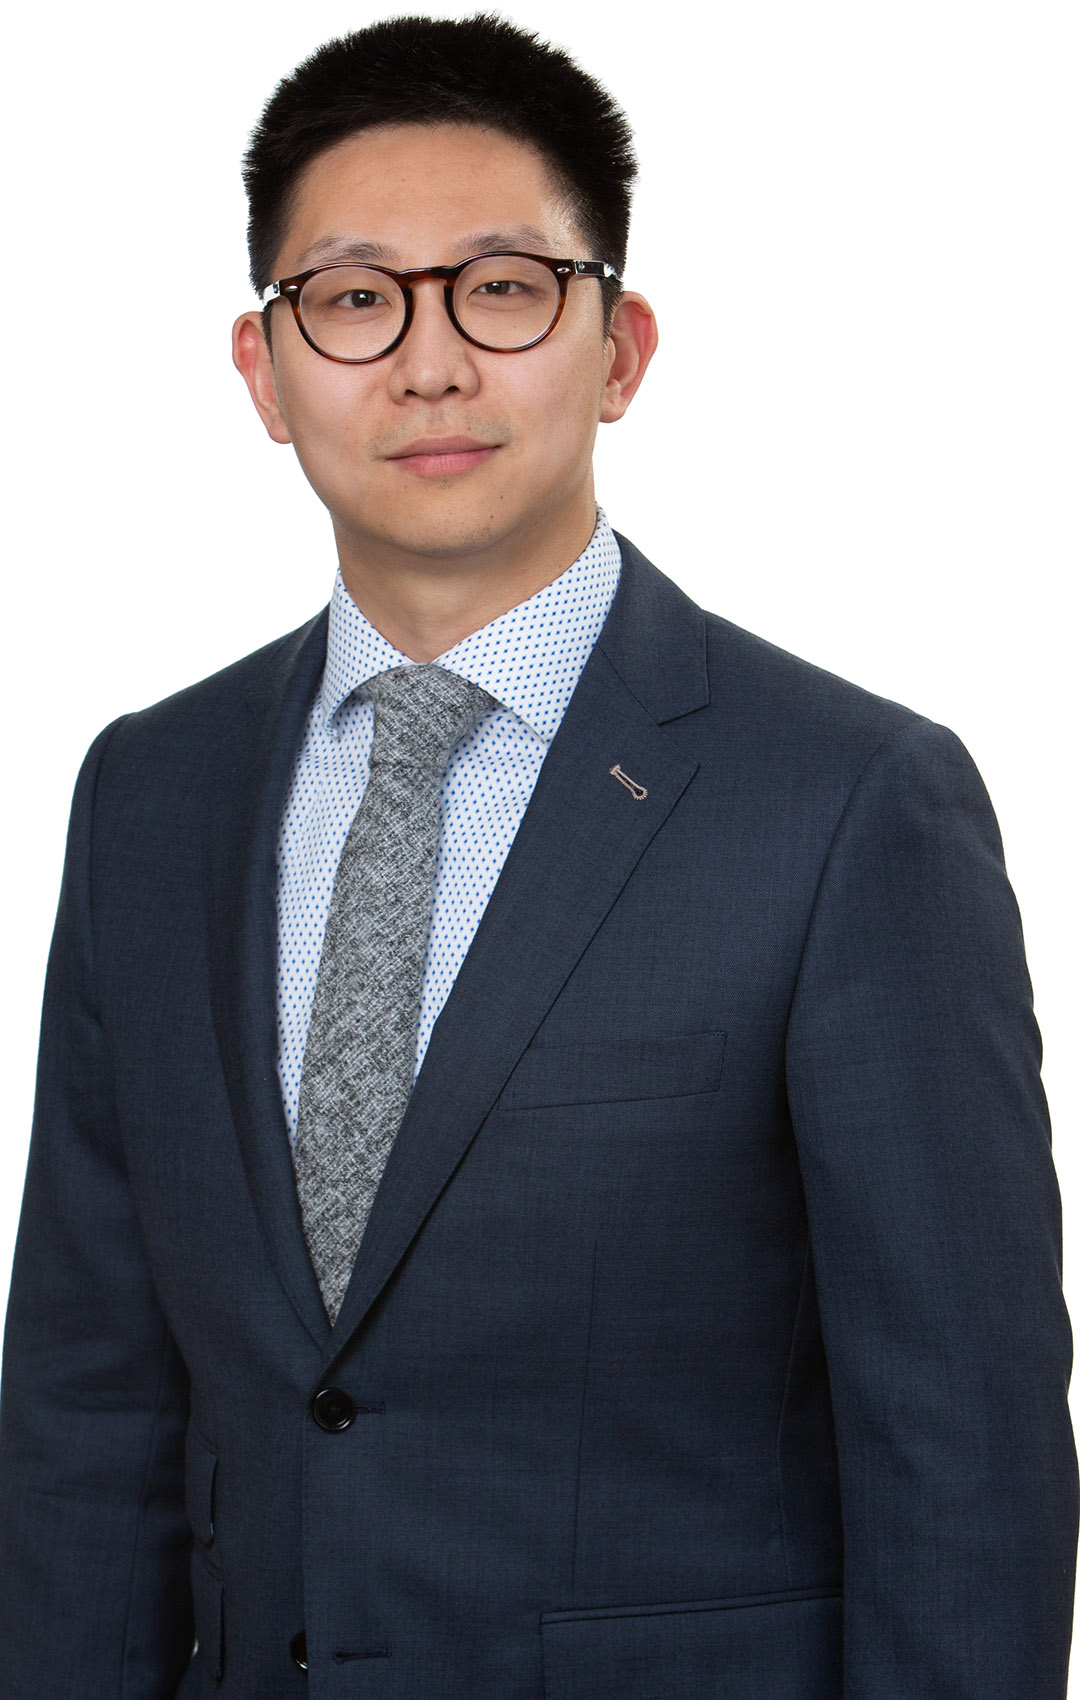 Franklin Chou